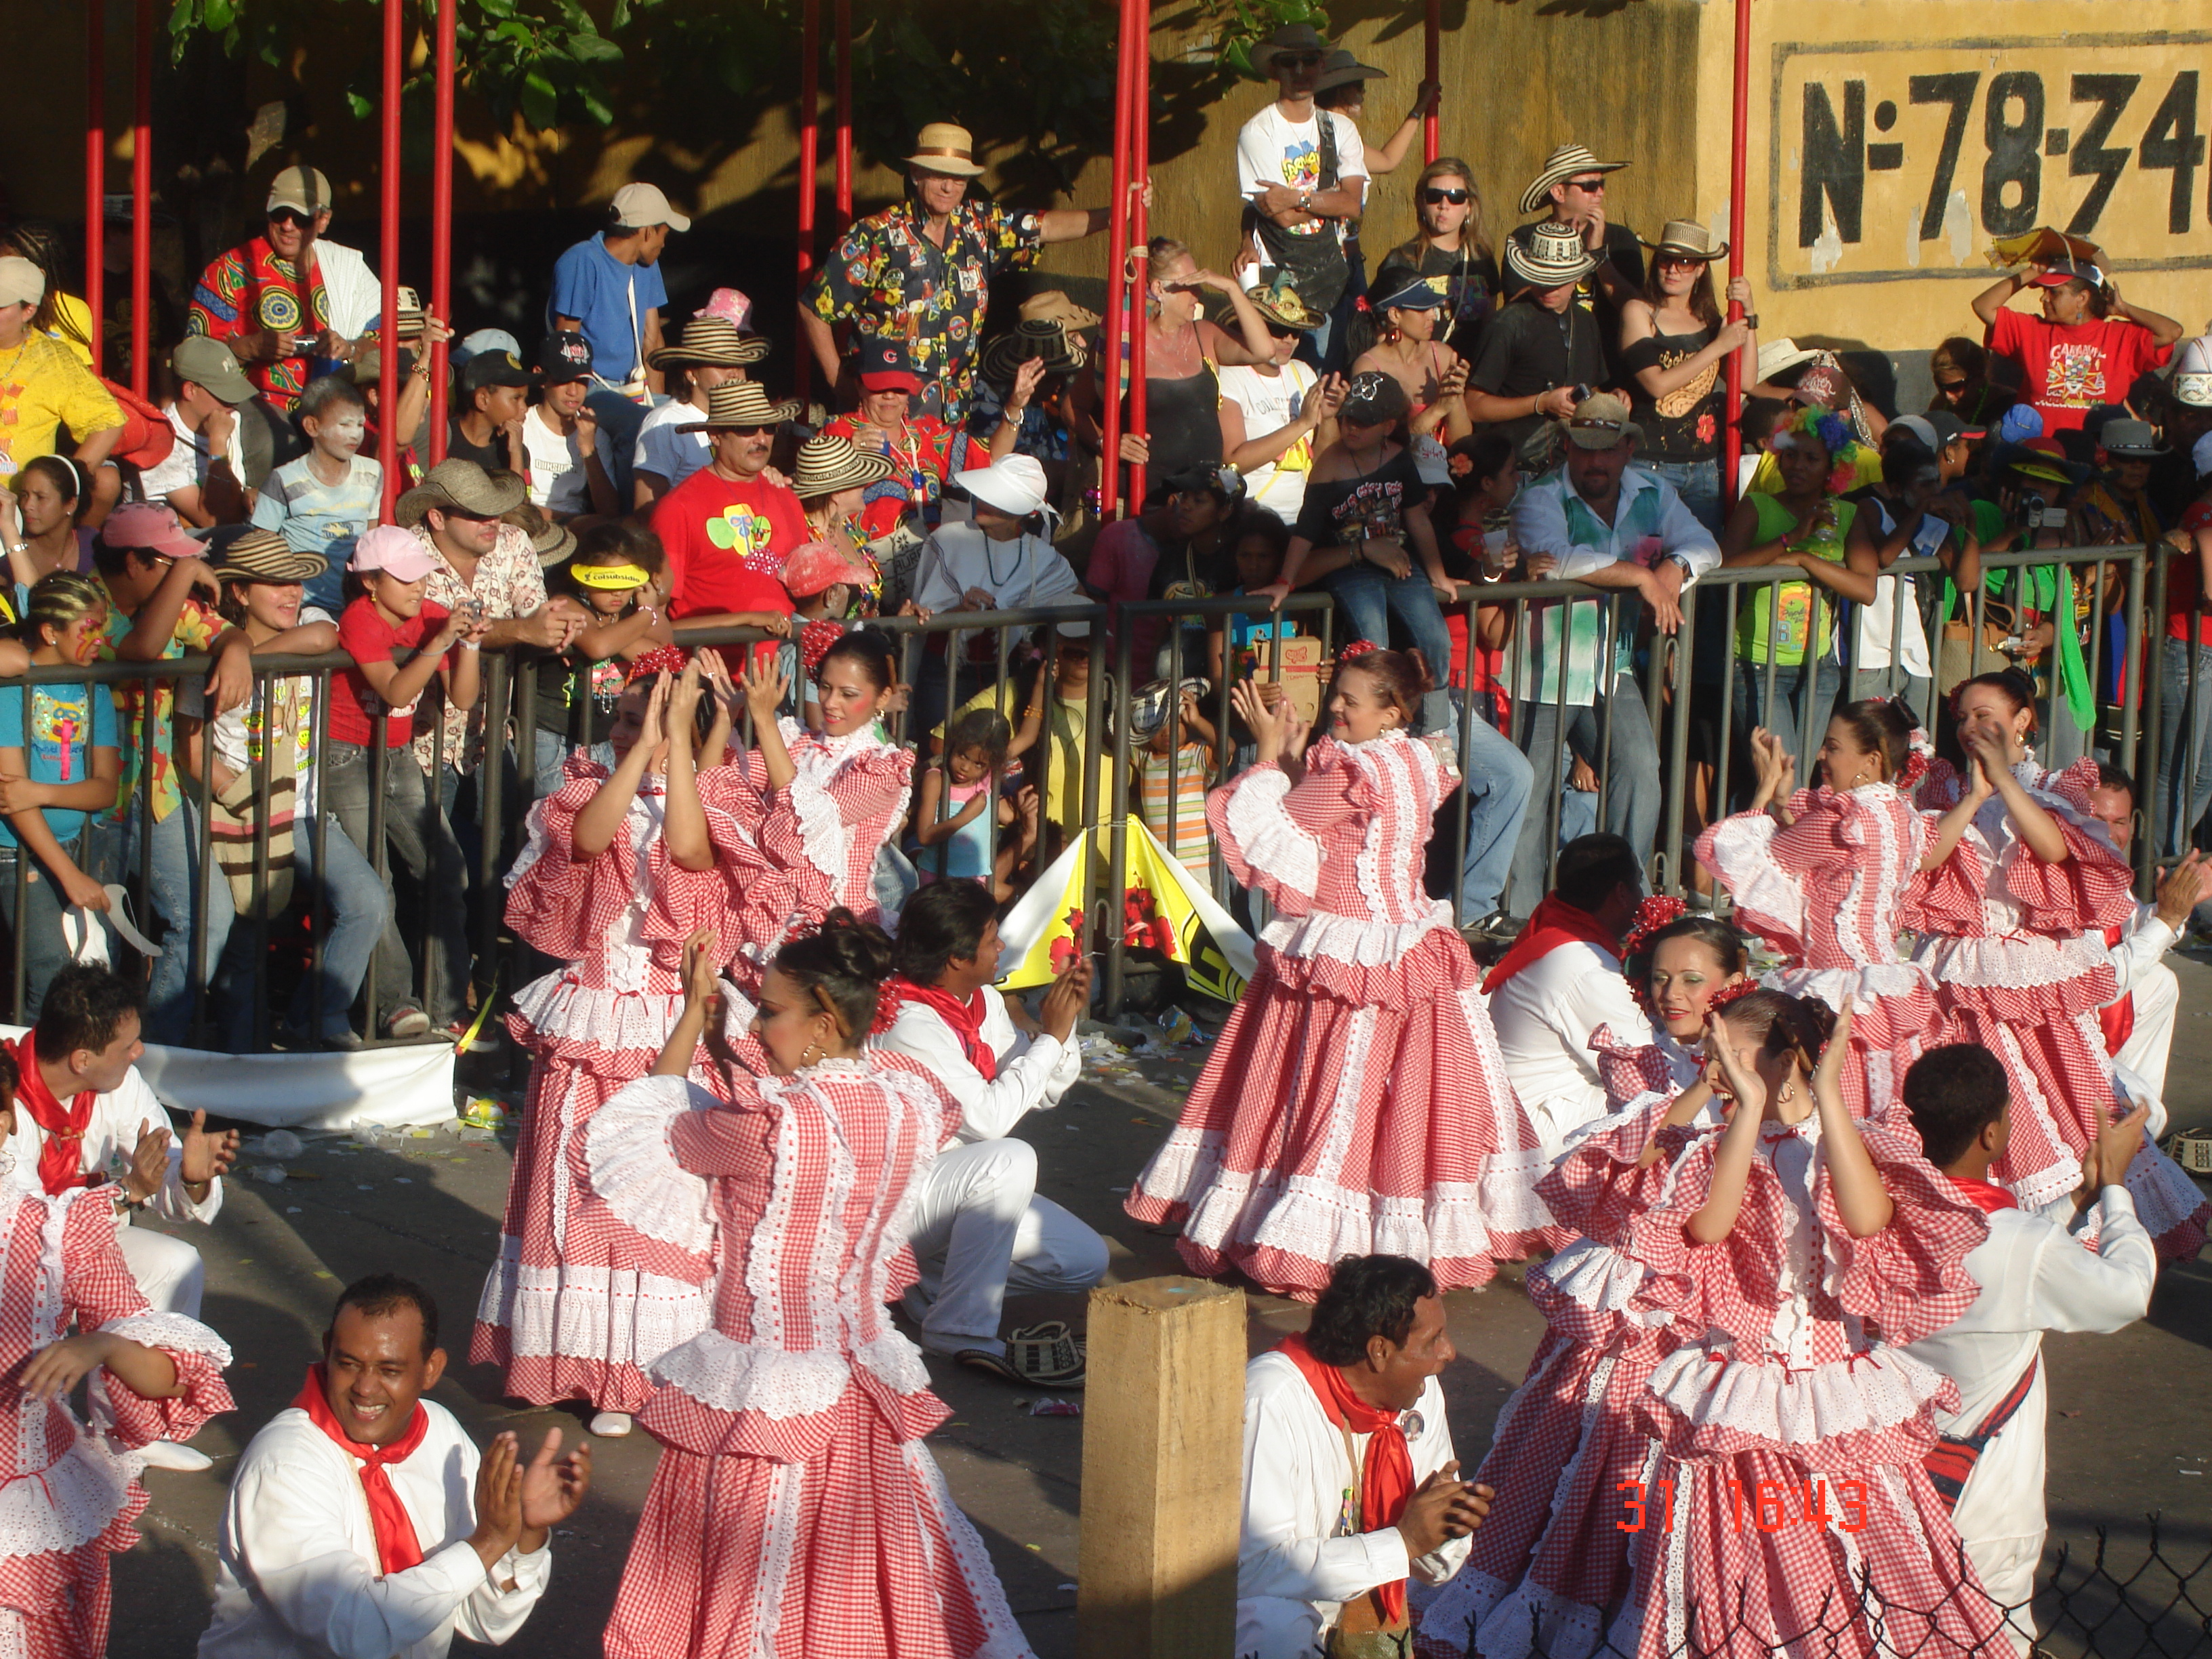 Description Baile de la Cumbia - Barranquilla.jpg